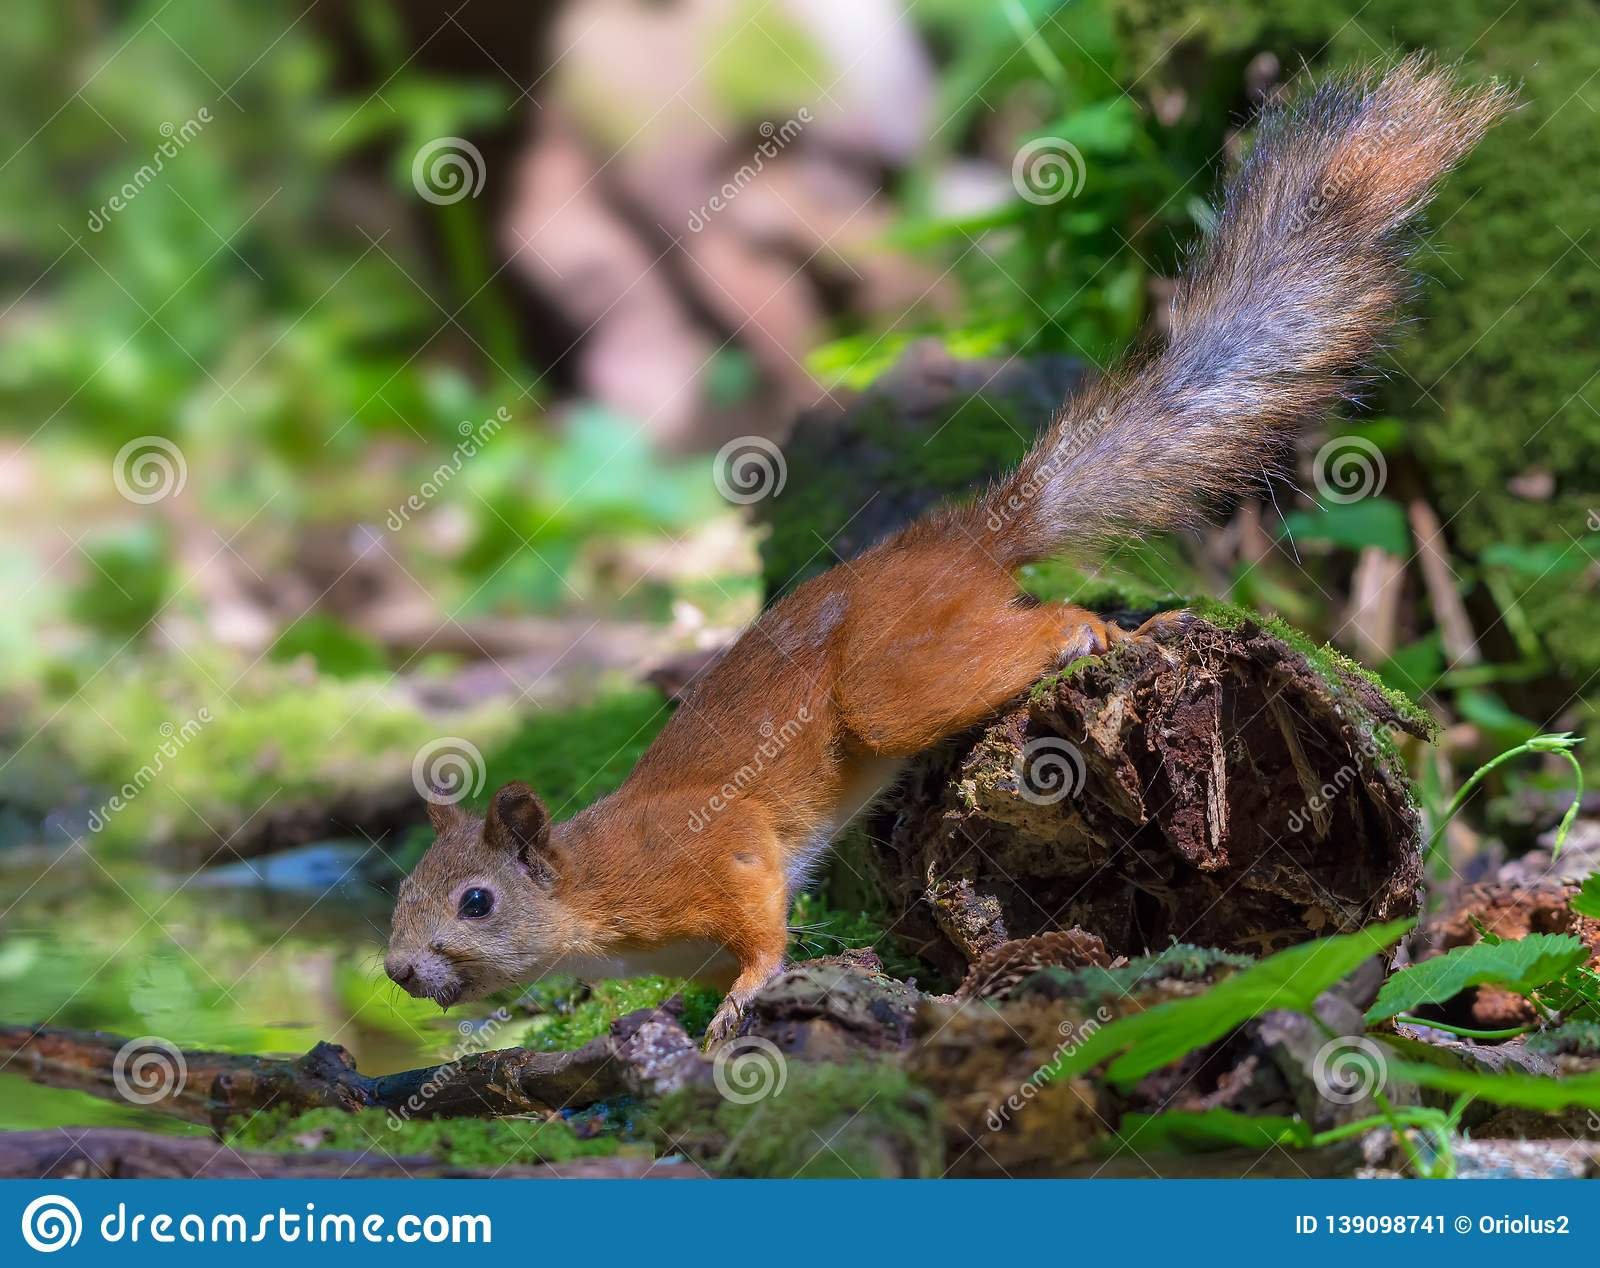 Red Squirrel frozen on a mossy snag near a water pond in wood